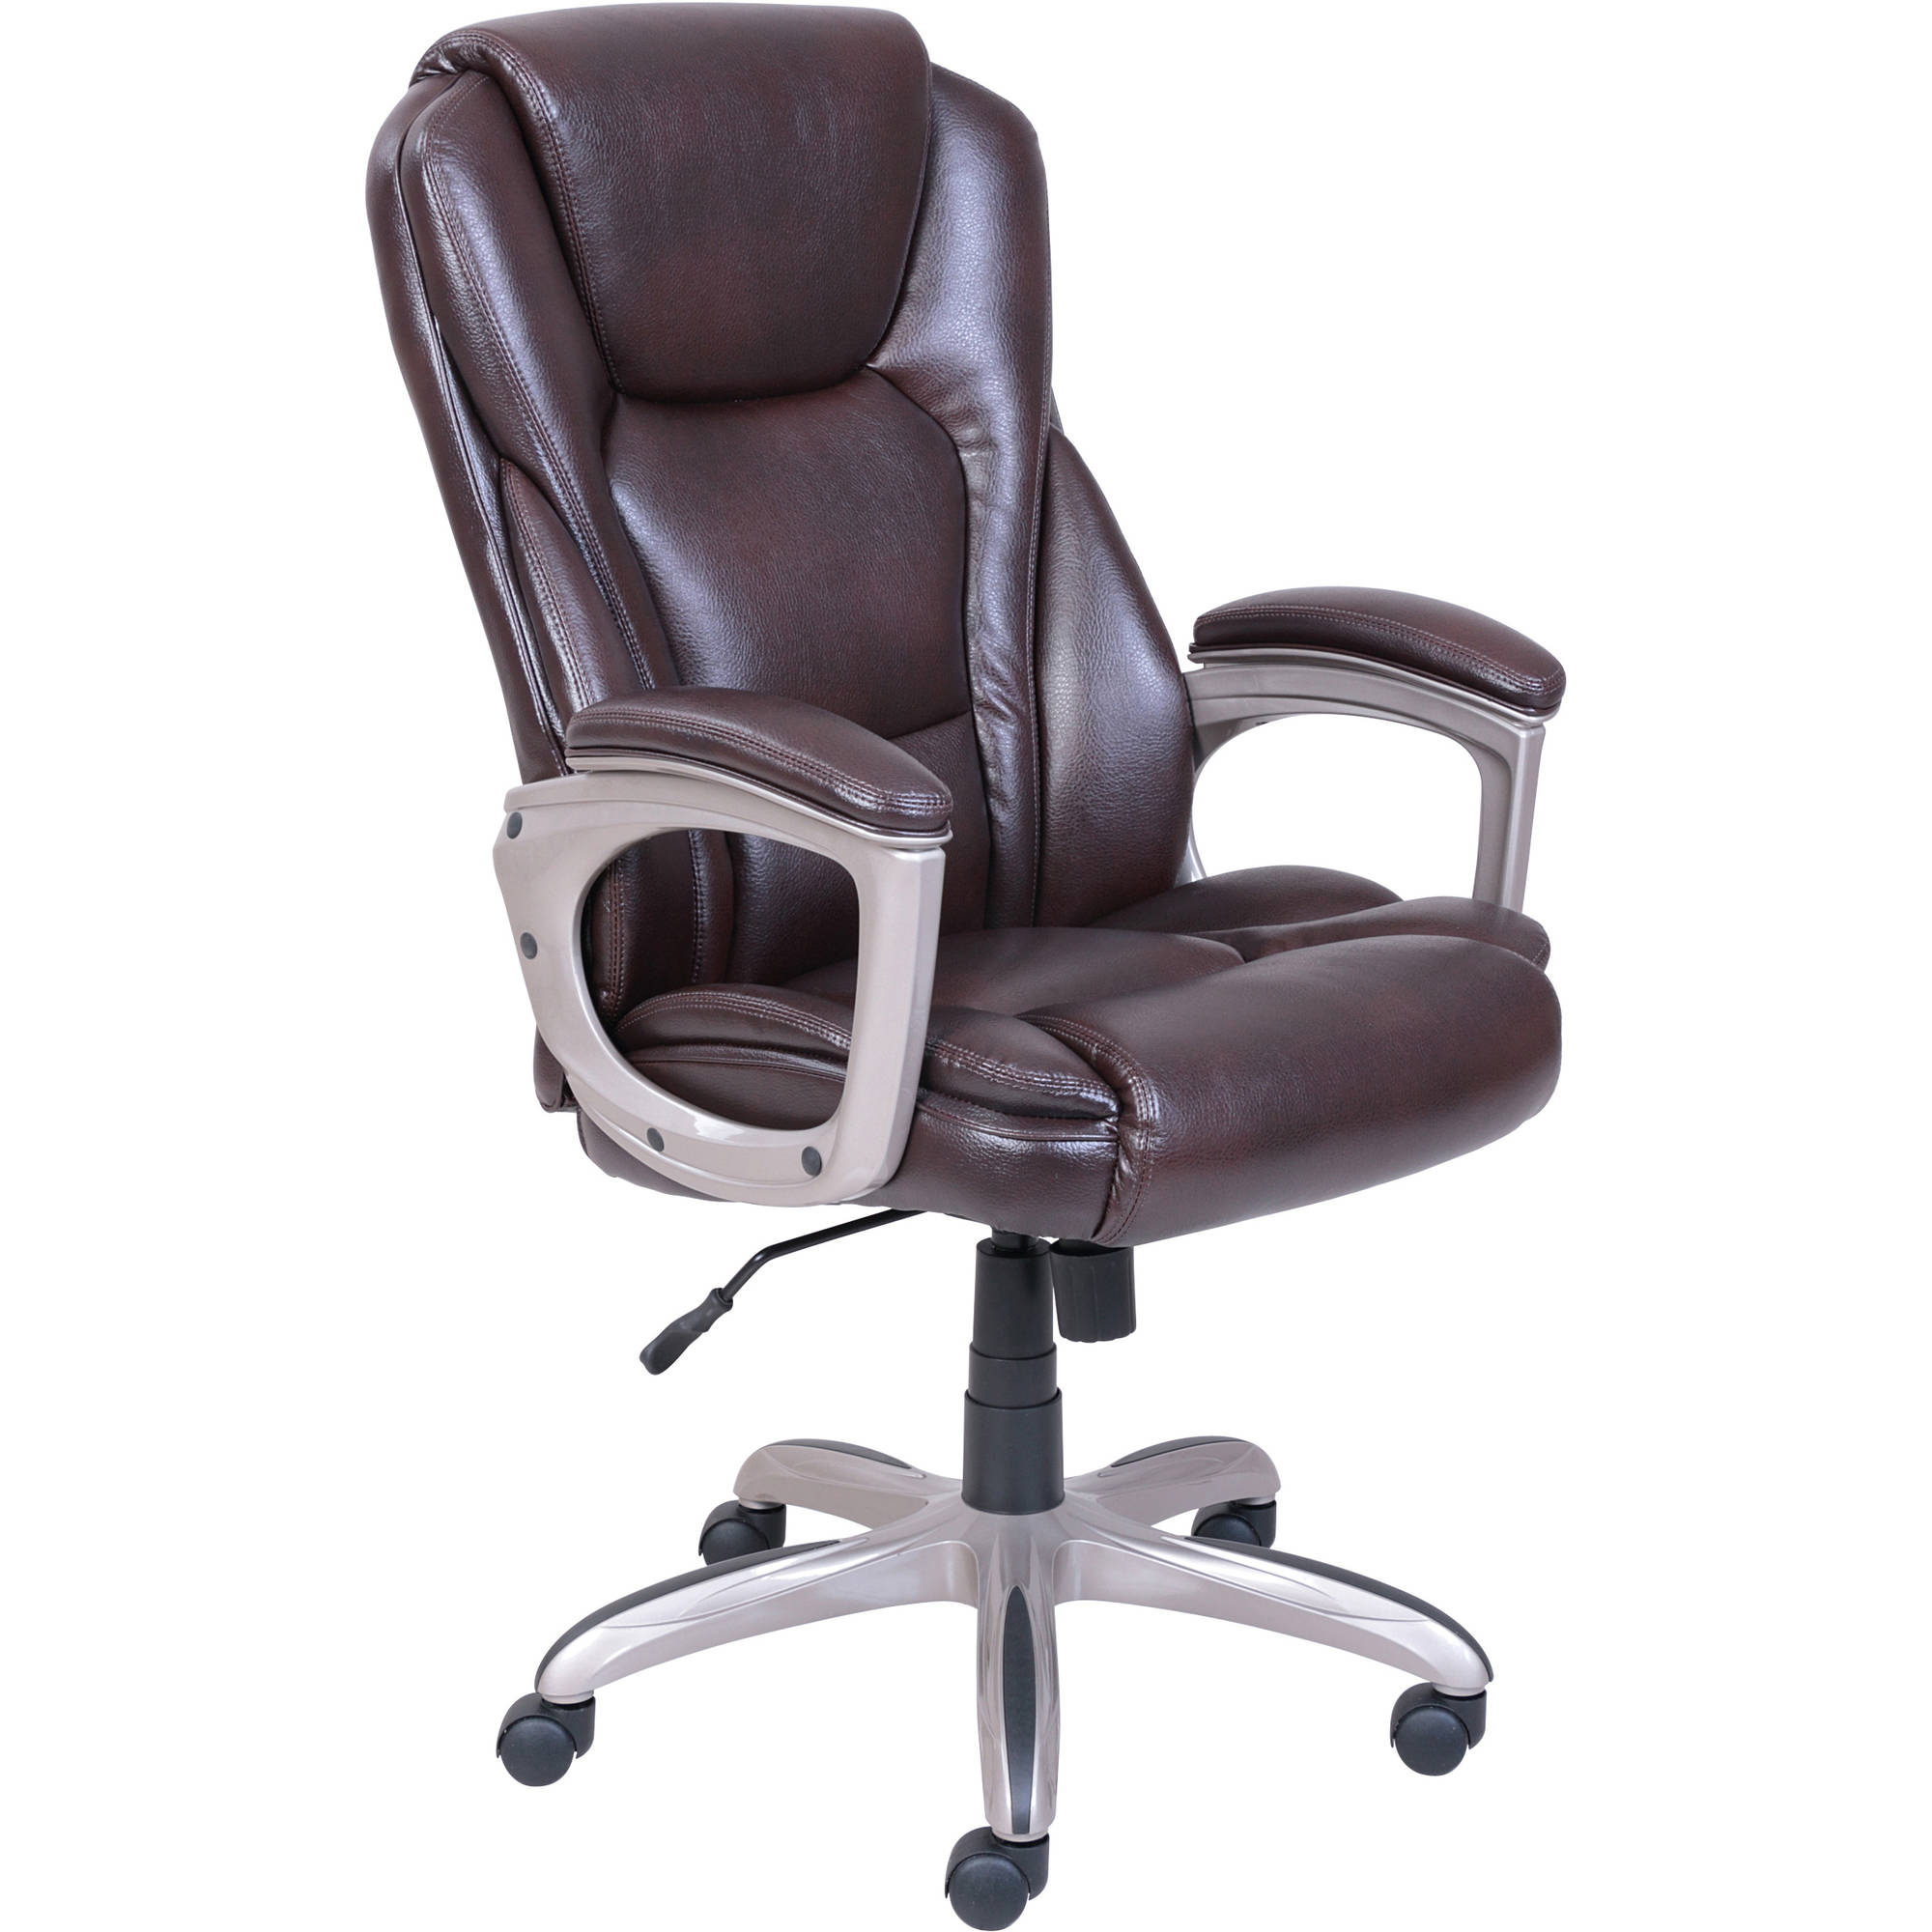 Serta Big U0026 Tall Commercial Office Chair With Memory Foam, Multiple Colors    Walmart.com